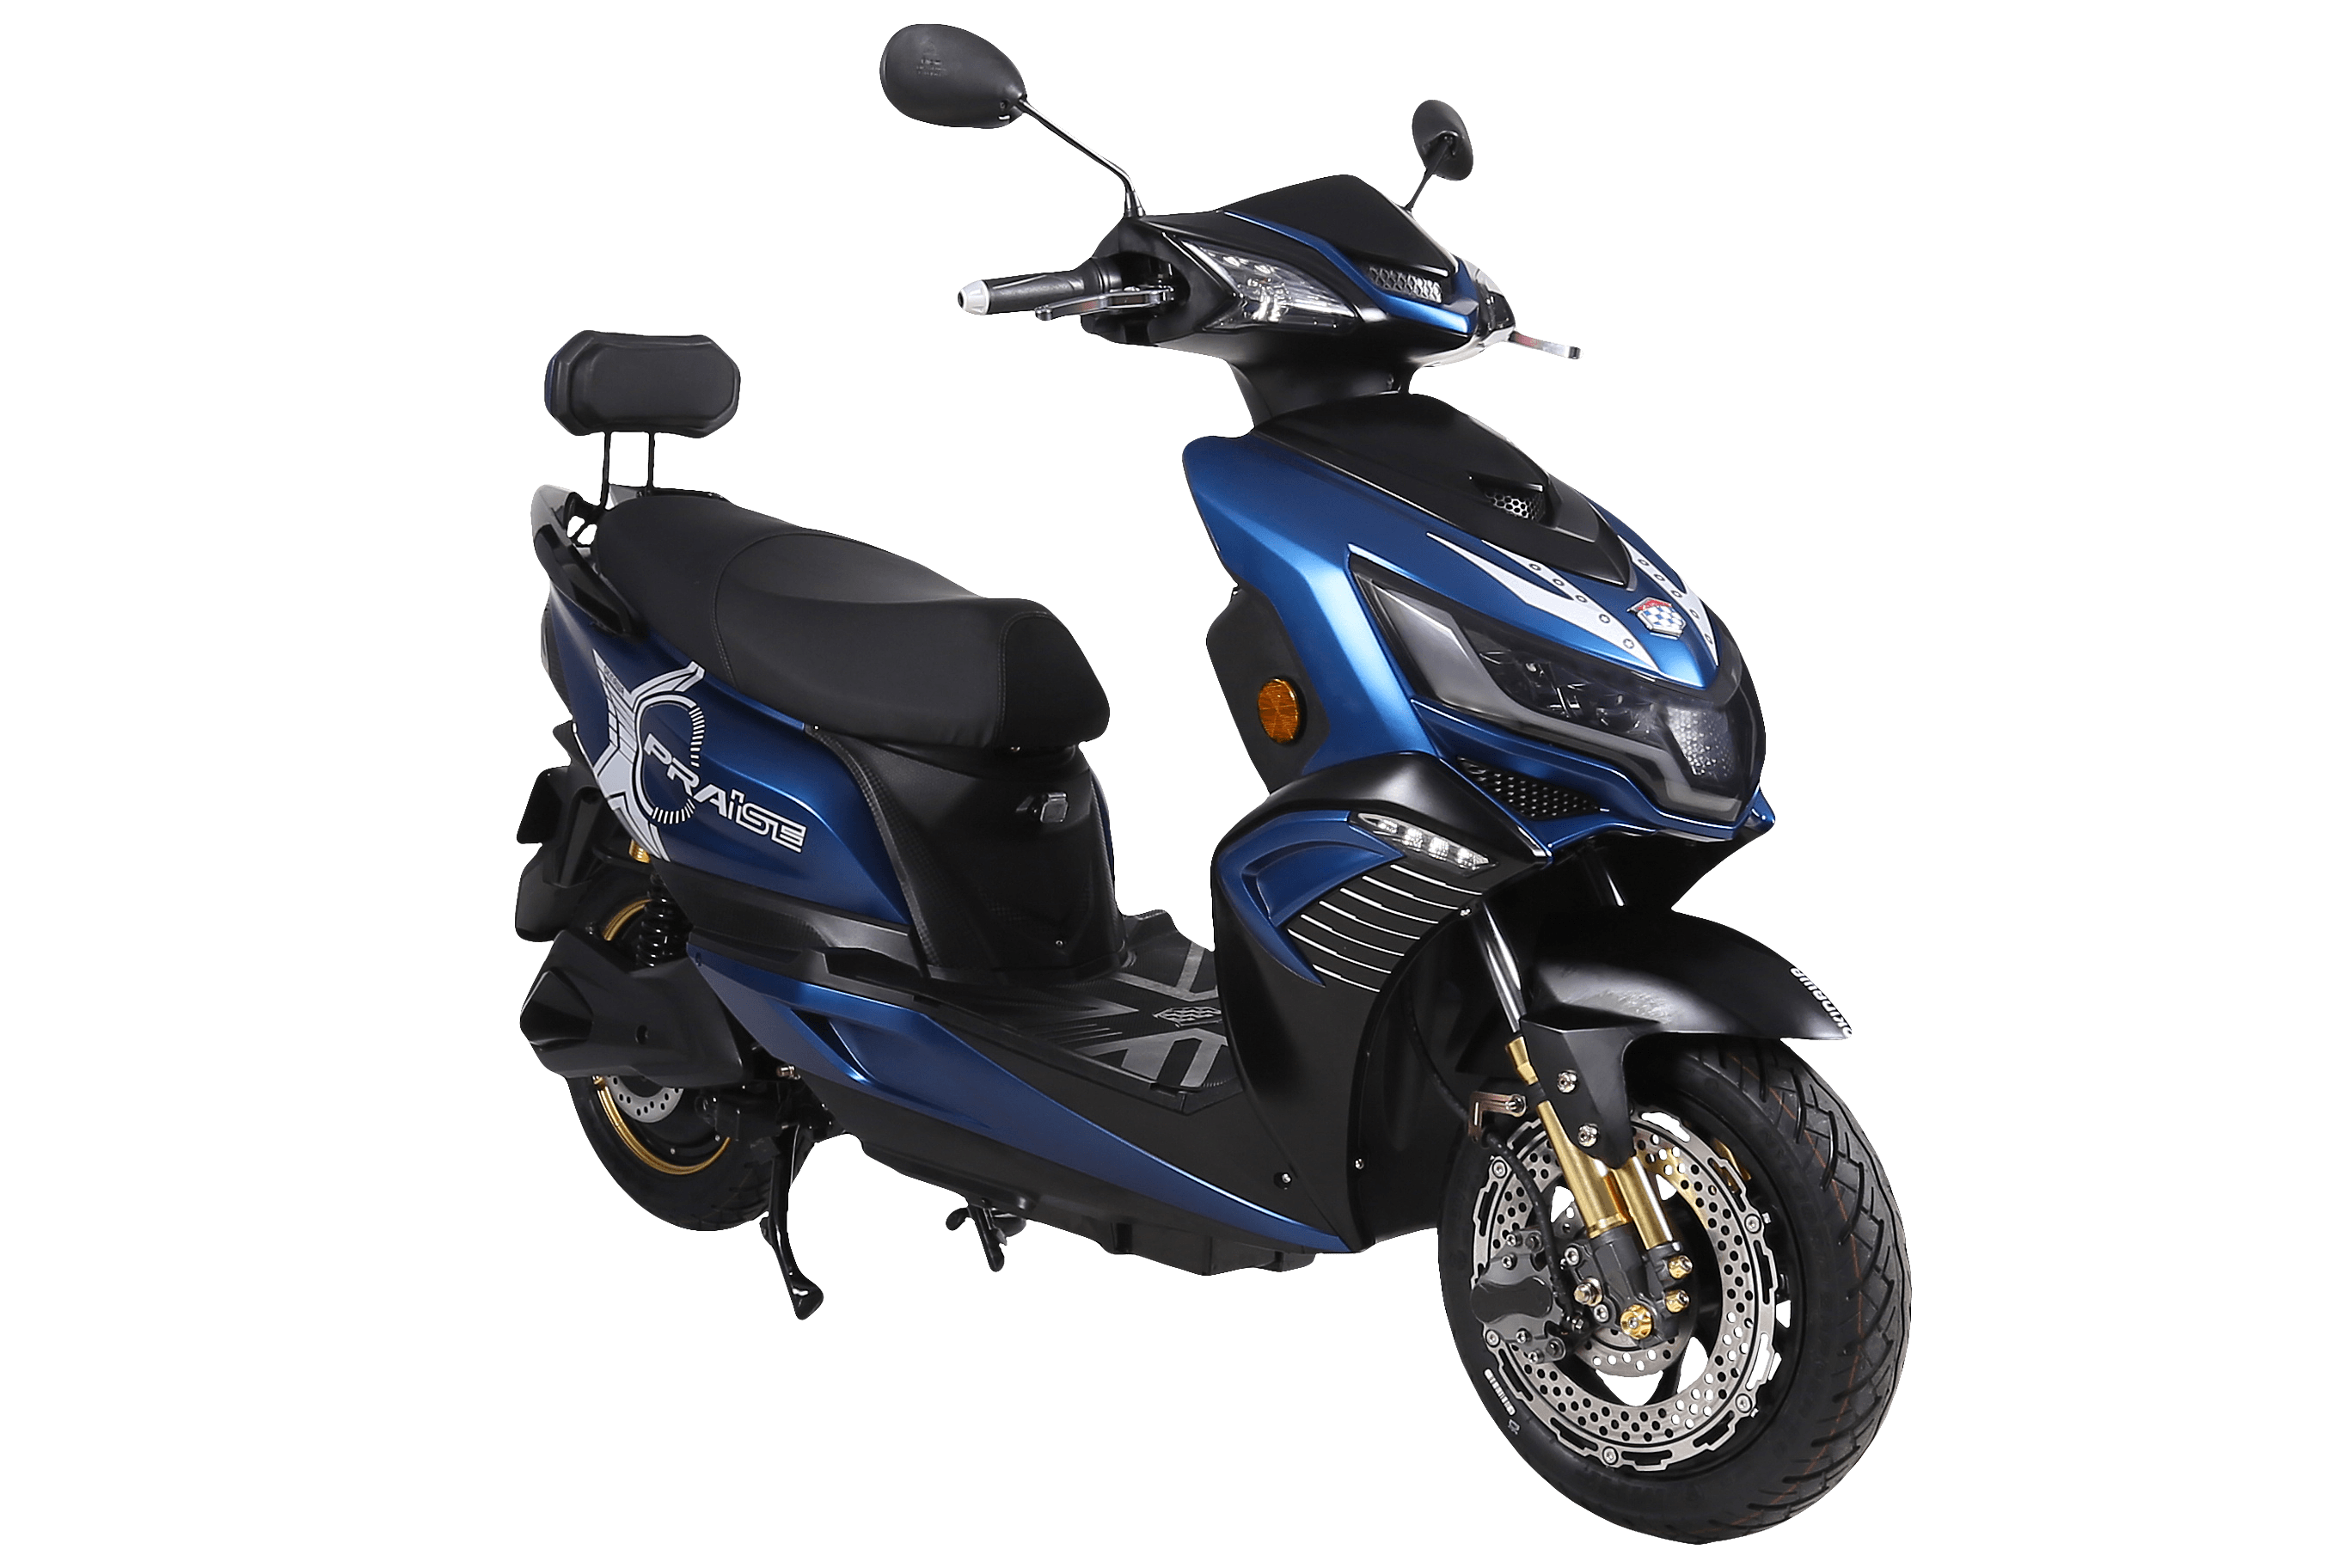 Electric Scooter With Seat >> Okinawa Praise Electric Scooter Price in India, Specifications, Range, Pics